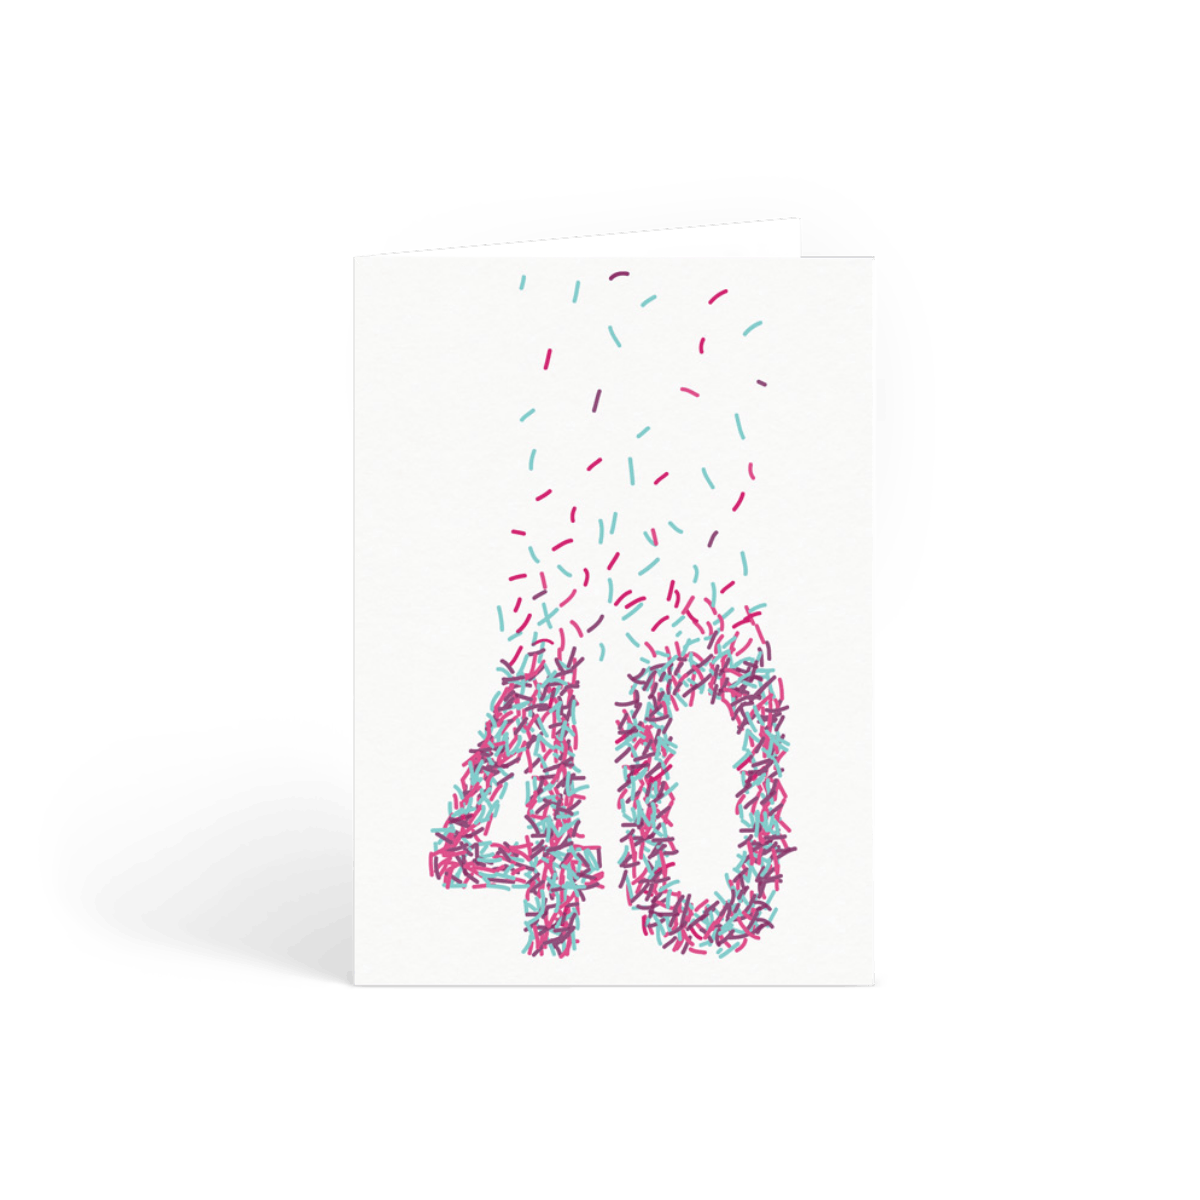 Https%3a%2f%2fwww.papier.com%2fproduct image%2f3501%2f2%2f40th sprinkles 936 avant 1453910856.png?ixlib=rb 1.1